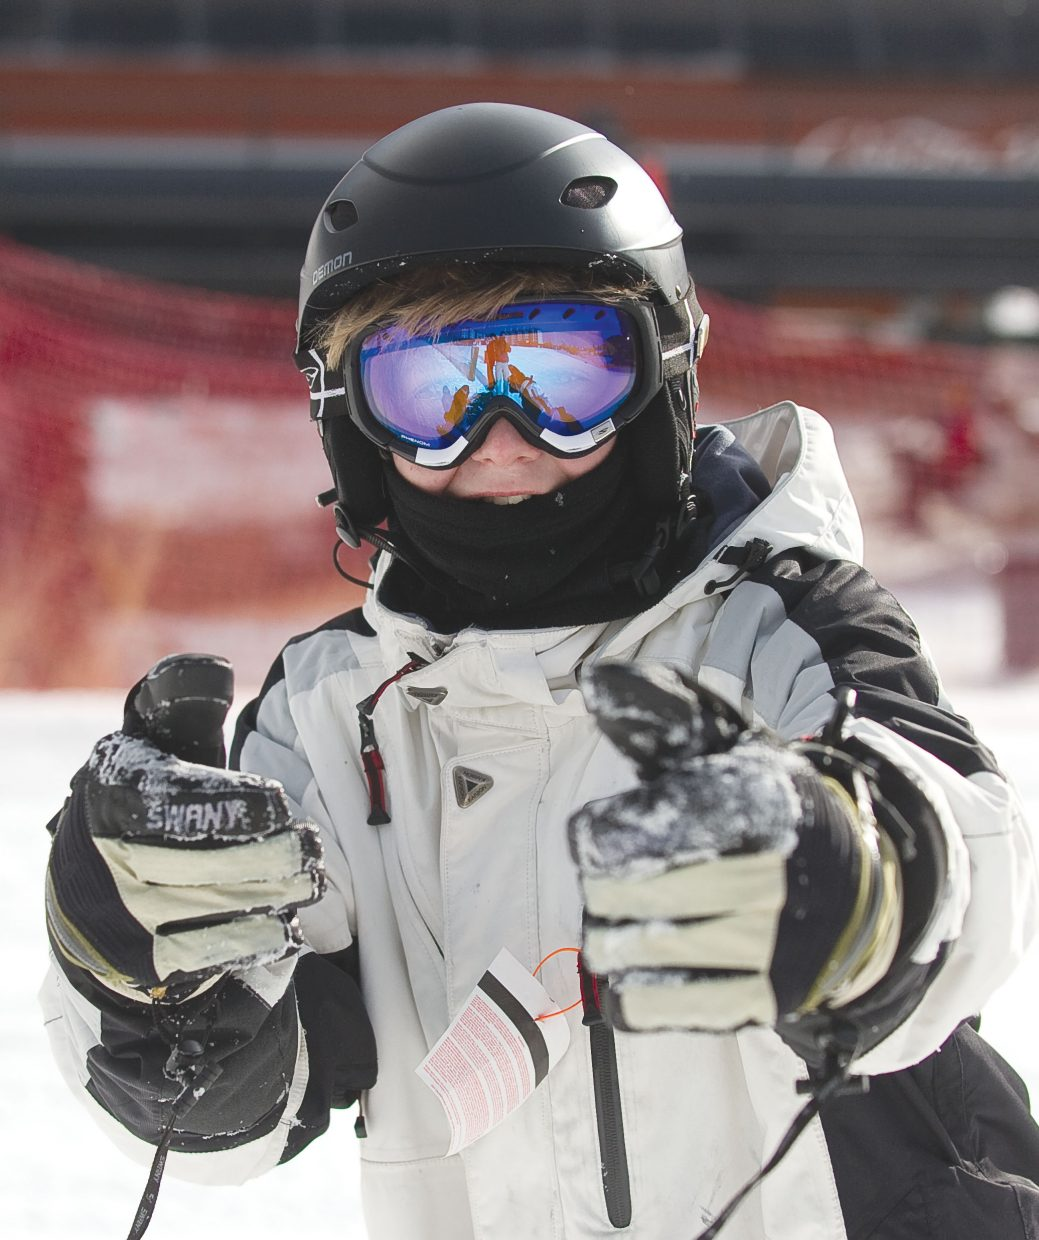 New snowboarder Ryan Zinkgraf gives two thumbs up after making his way down a run at the base of Steamboat Ski Area on Thursday afternoon. Ryan was in Steamboat Springs as part of the Children's Hospital Burn Camp Program. This week's camp brought teens from across the country to Steamboat Springs to share their experience and have fun on the slopes.